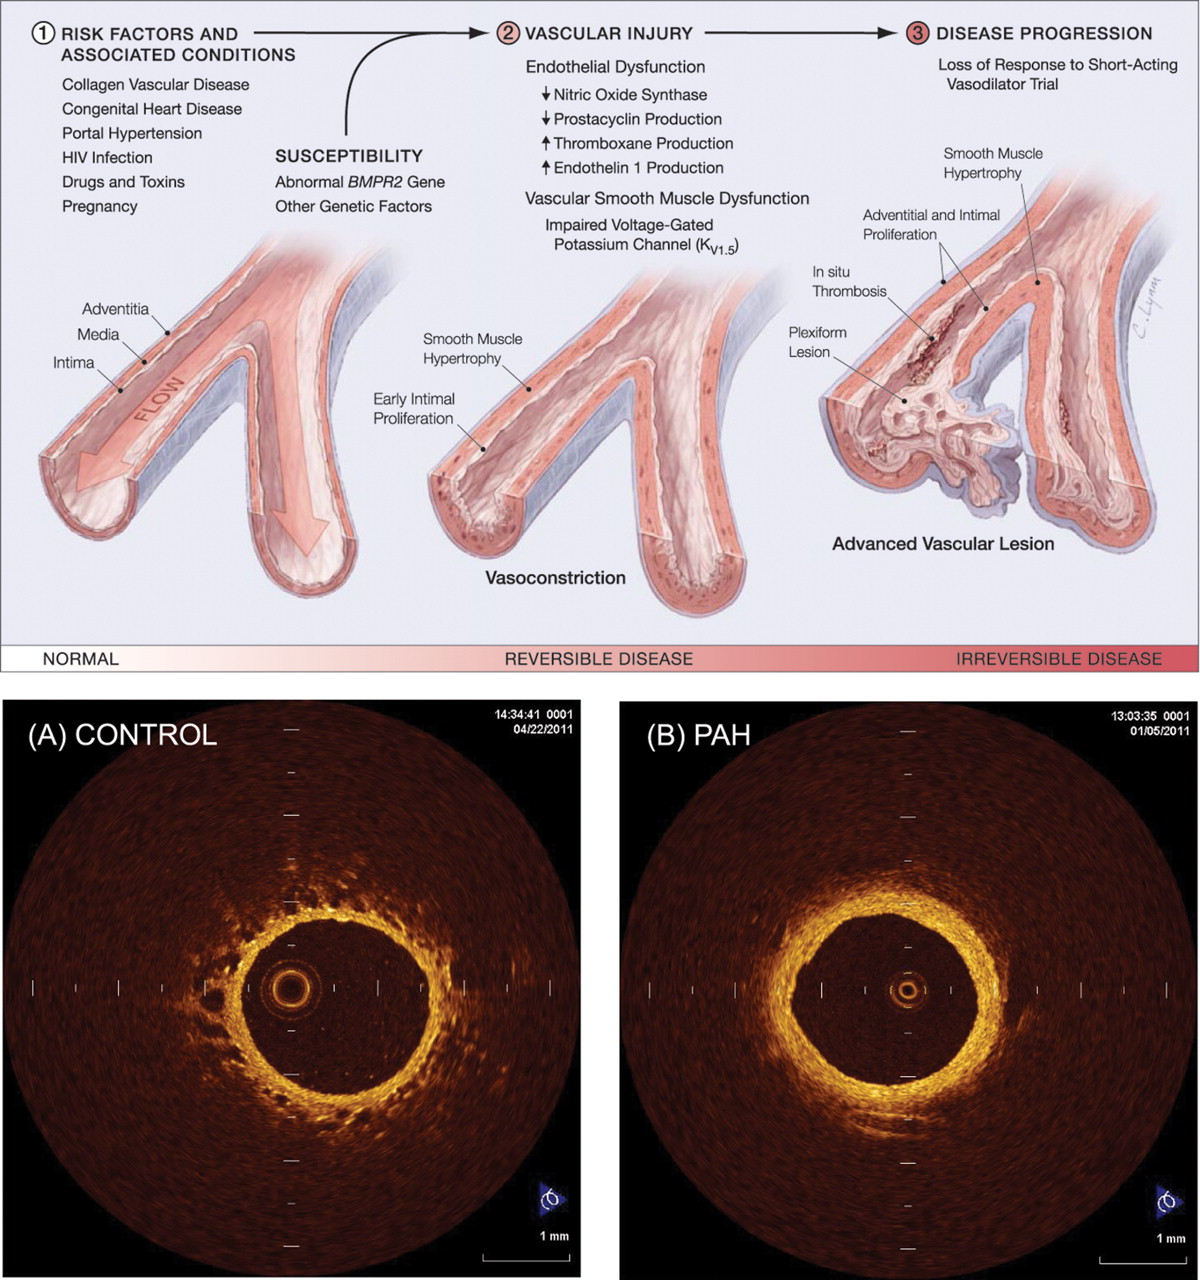 how hereditary predisposition cause clot